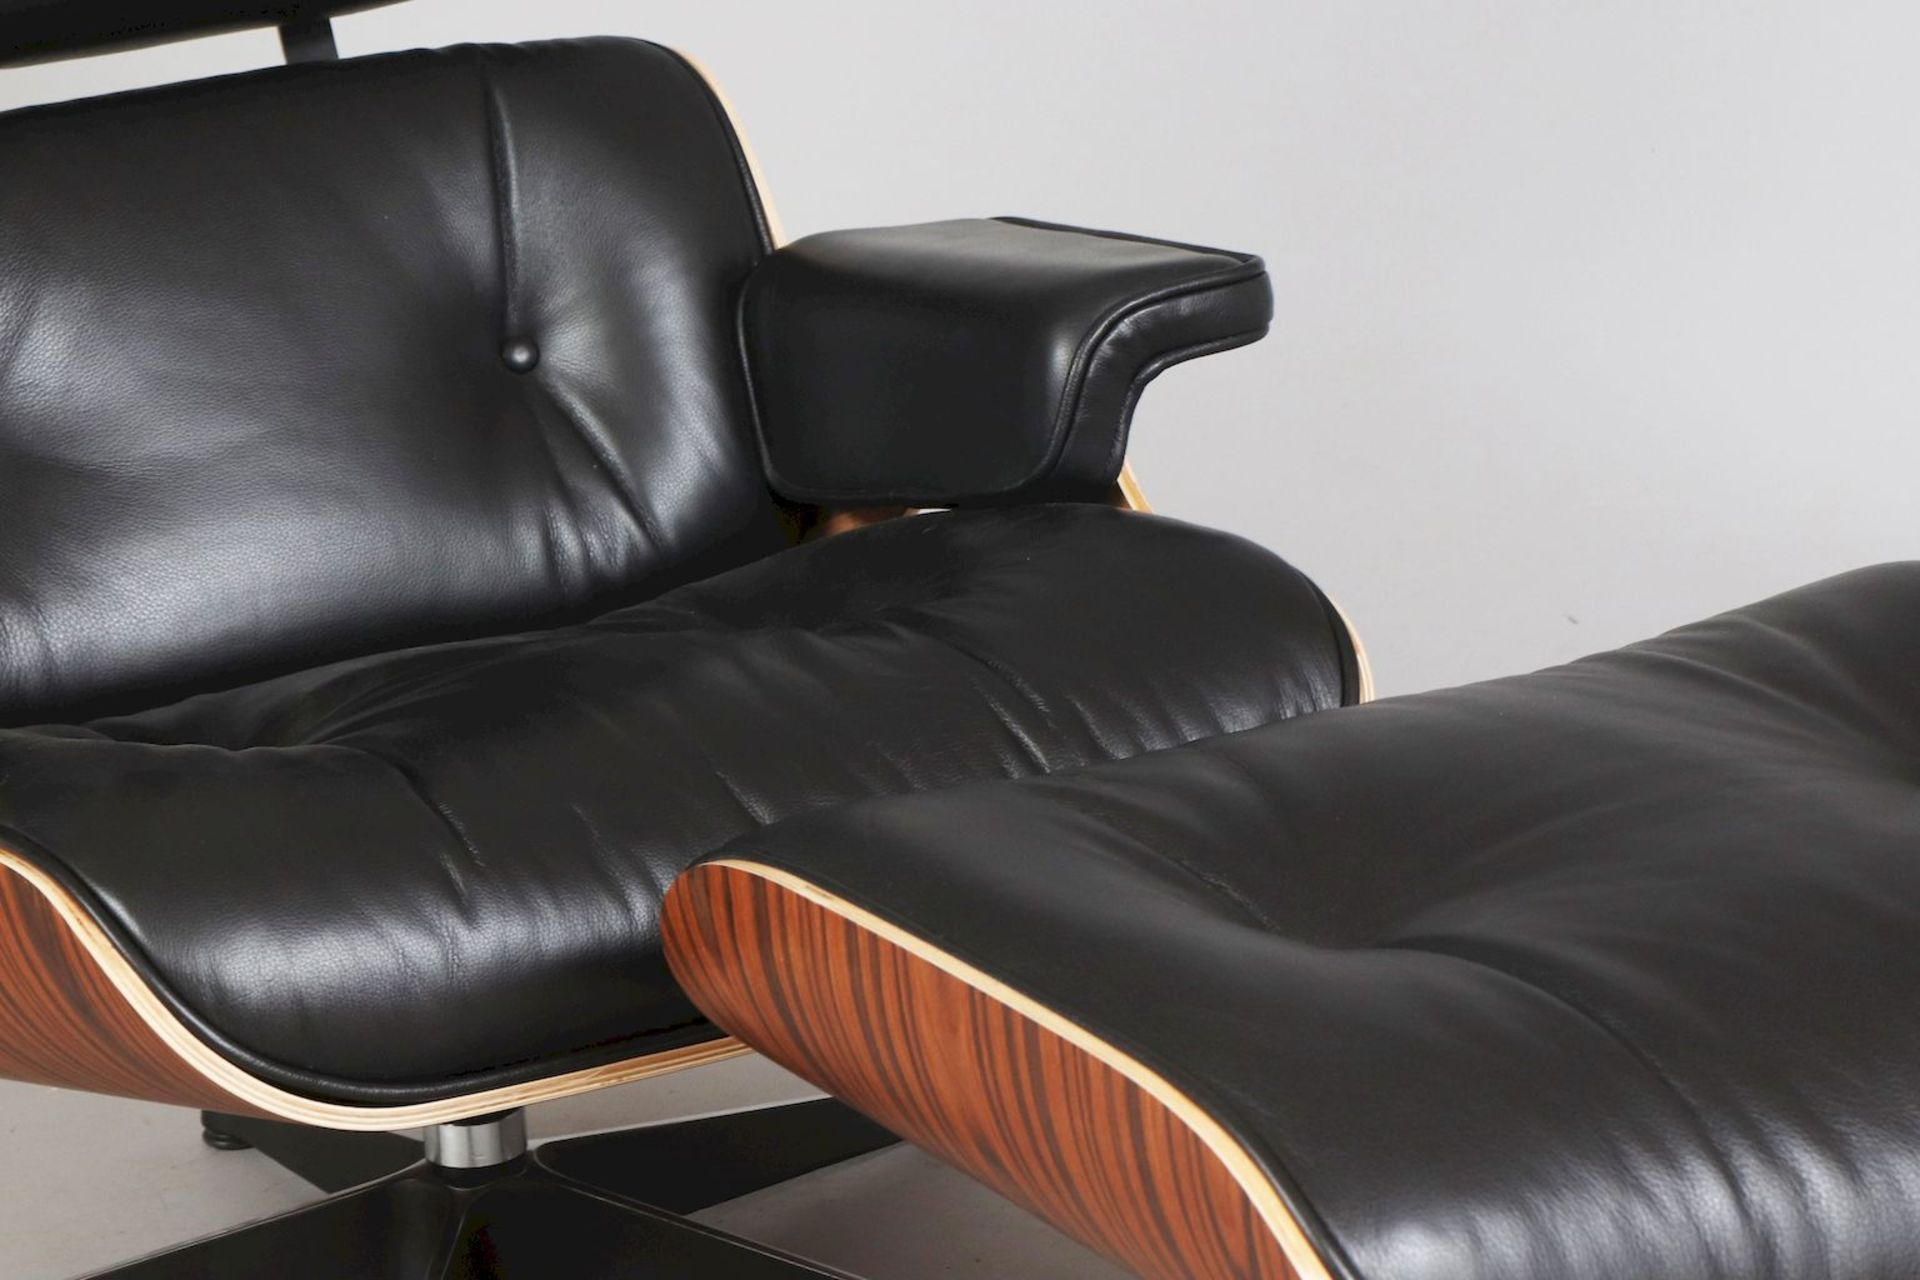 Lounge chair mit Ottomane - Image 3 of 5